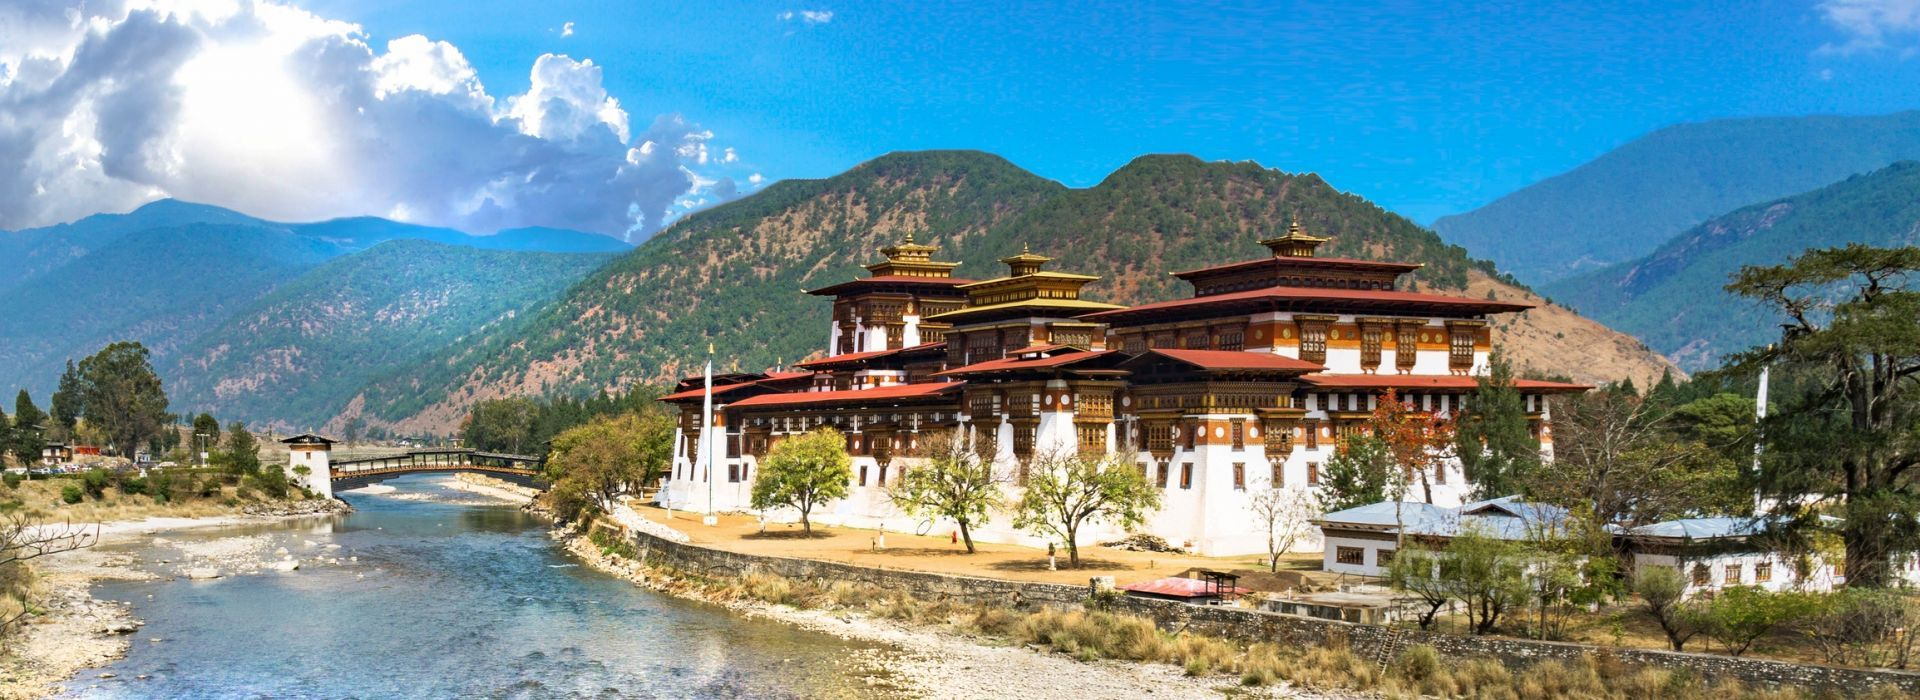 Countryside and village visits Tours in Bhutan